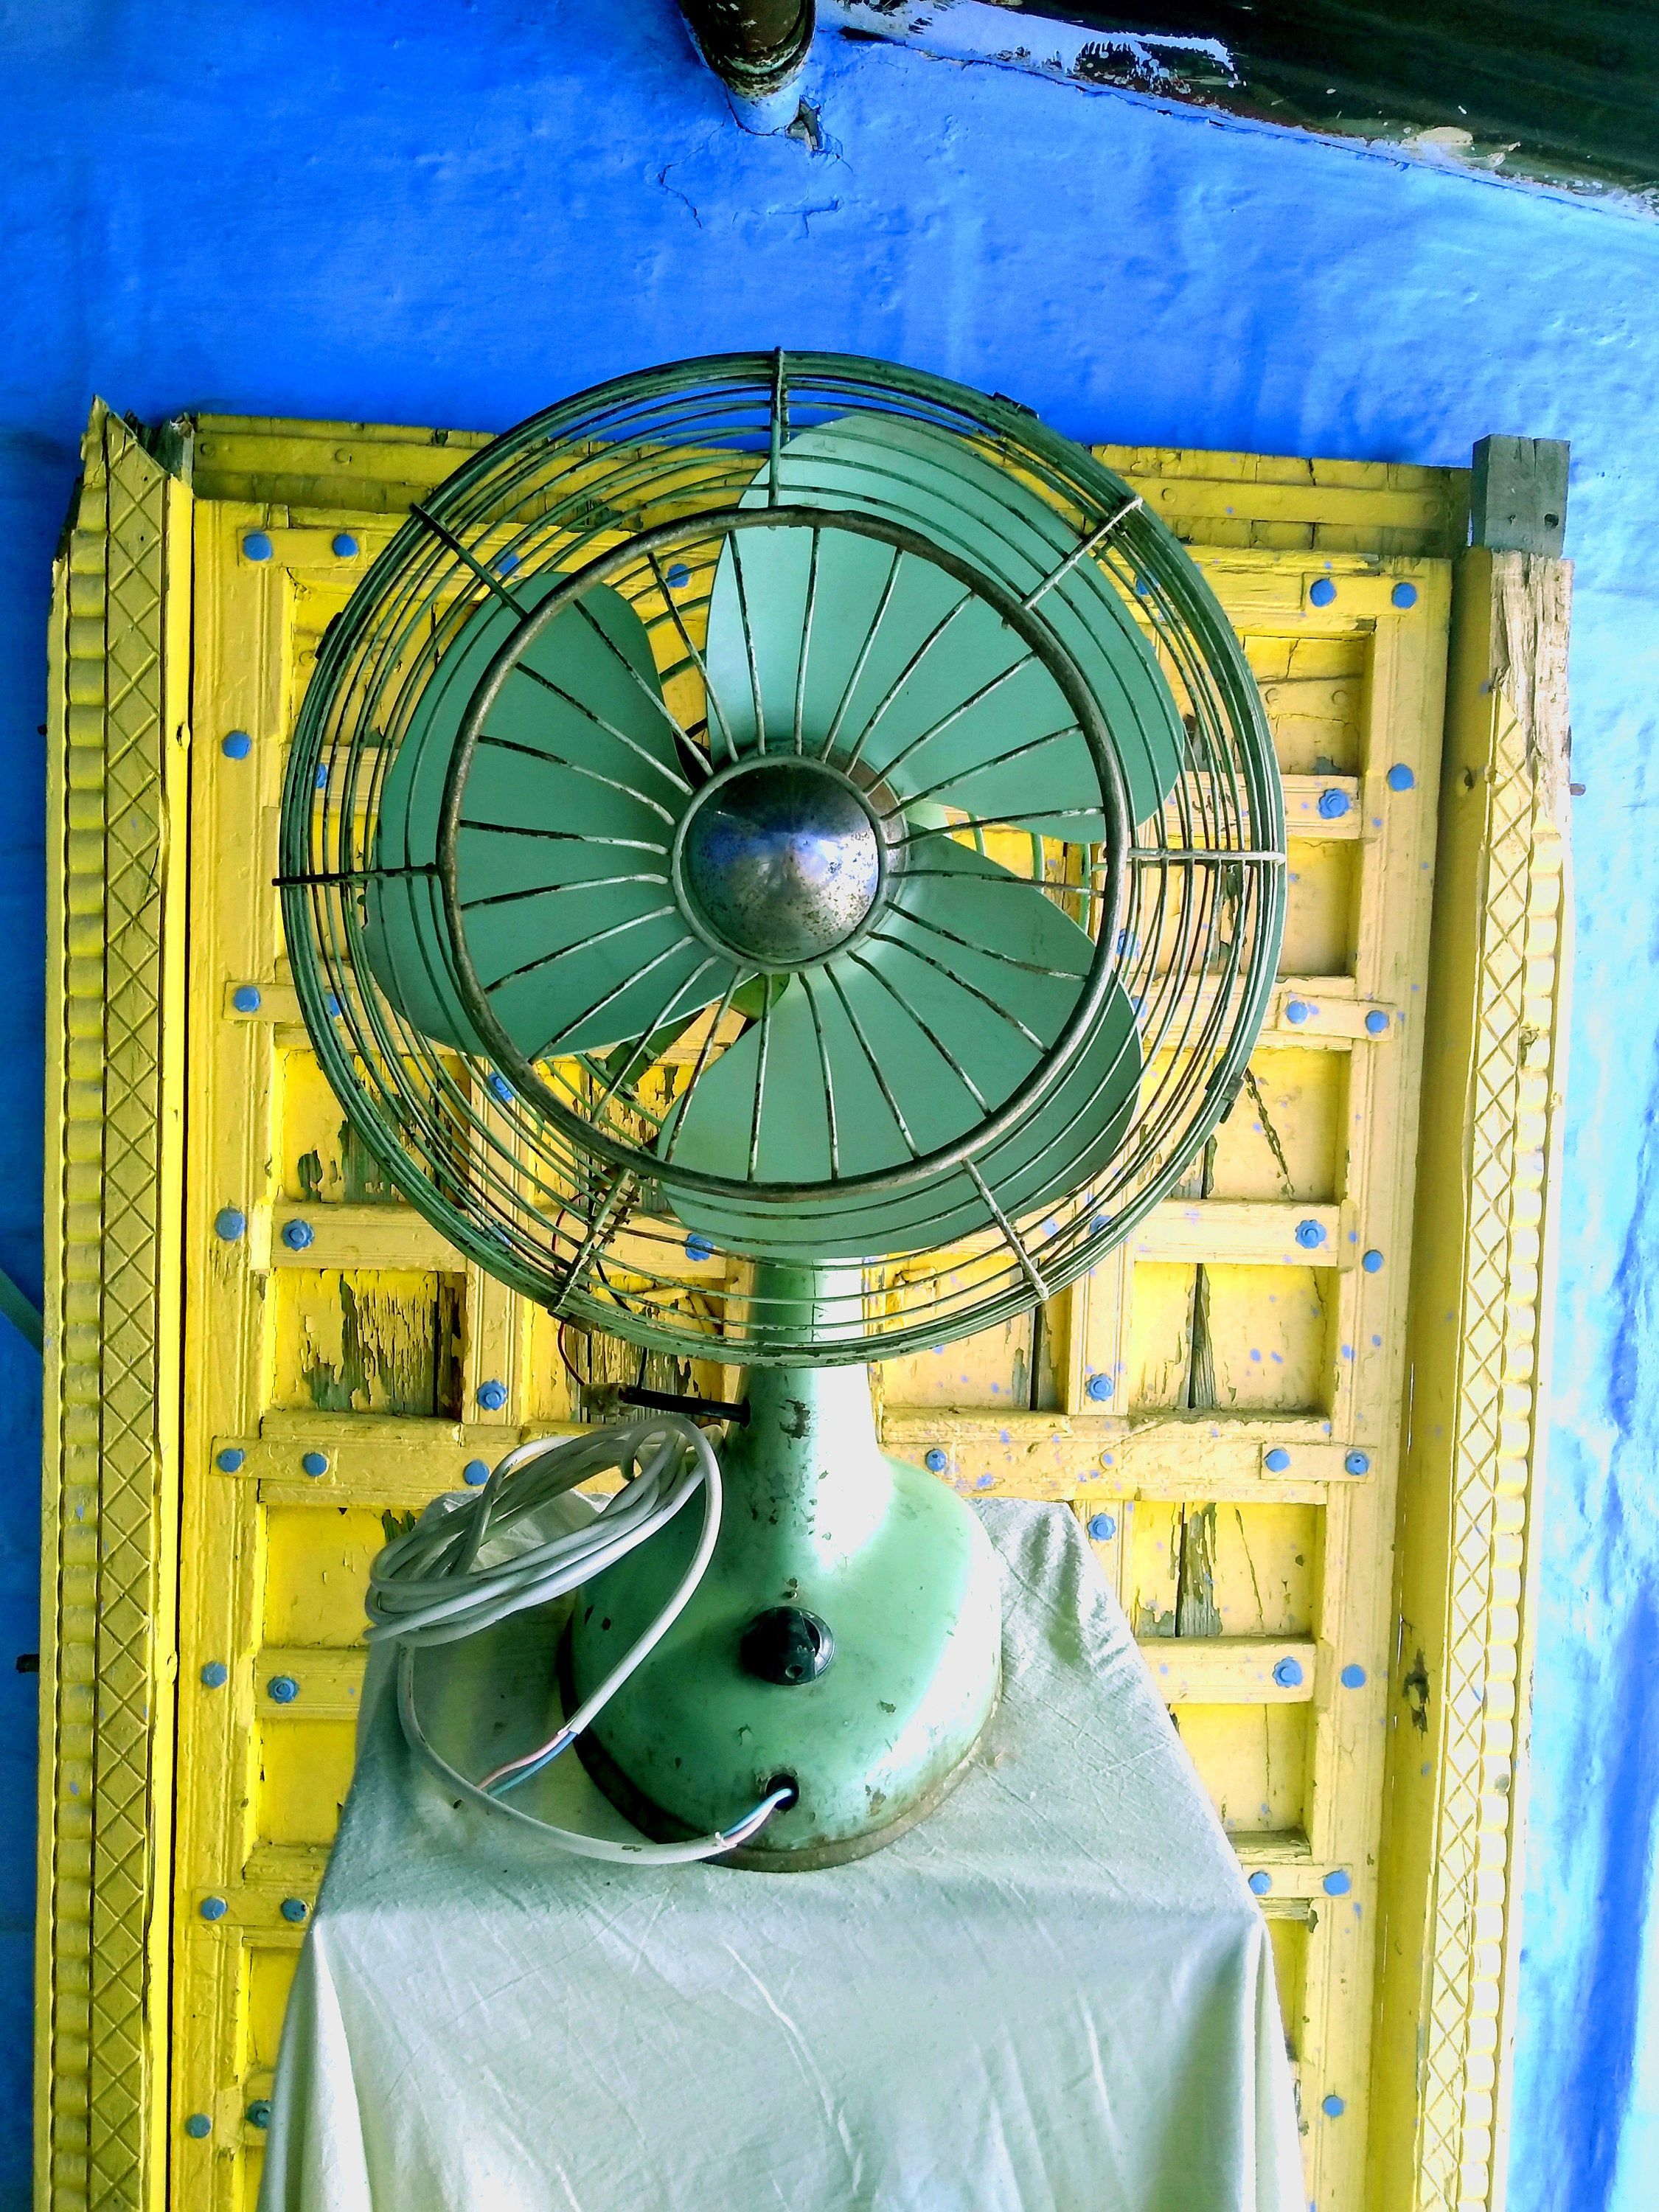 Indian vintage electric table fandesk fan for home decor